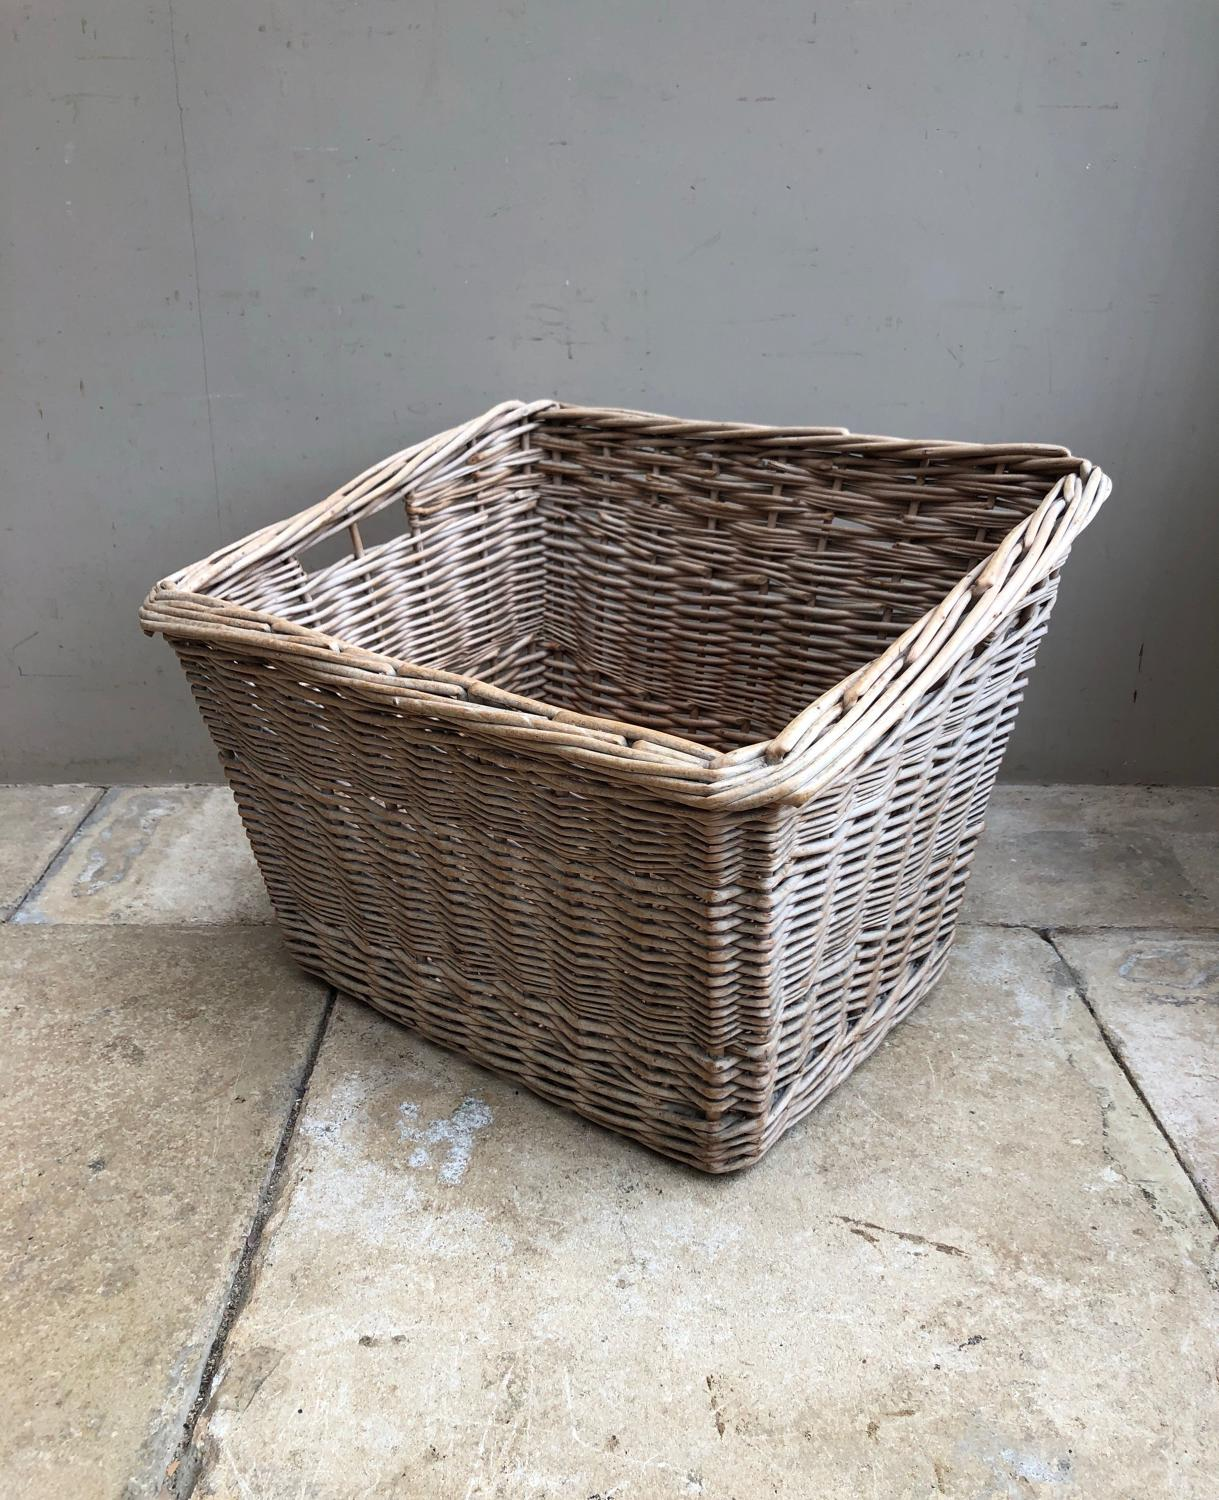 Large Early 20th Century Basket - Great for Logs or Storage